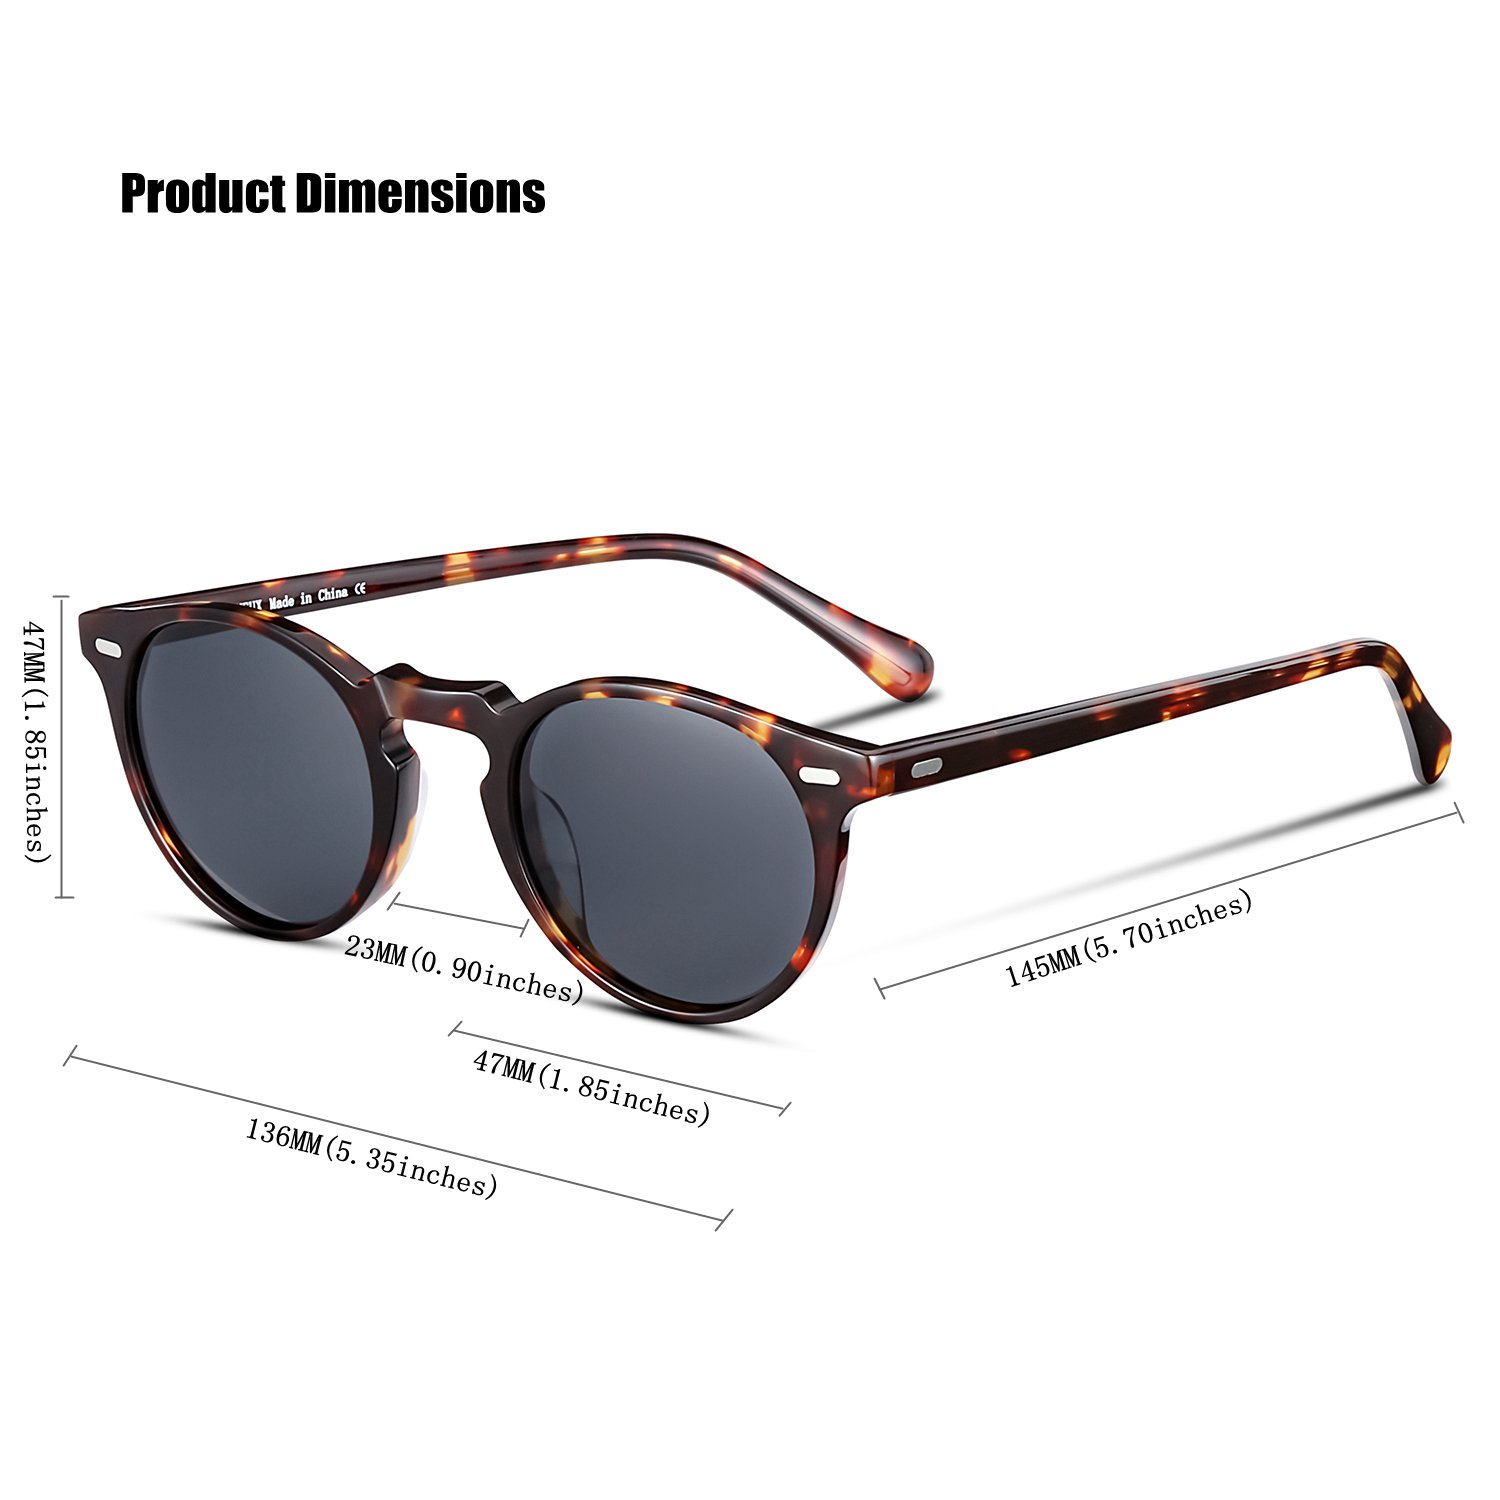 2a180281b13 Amazon.com  CANYEUX Vintage Round Polarized Sunglasses for Women and ...